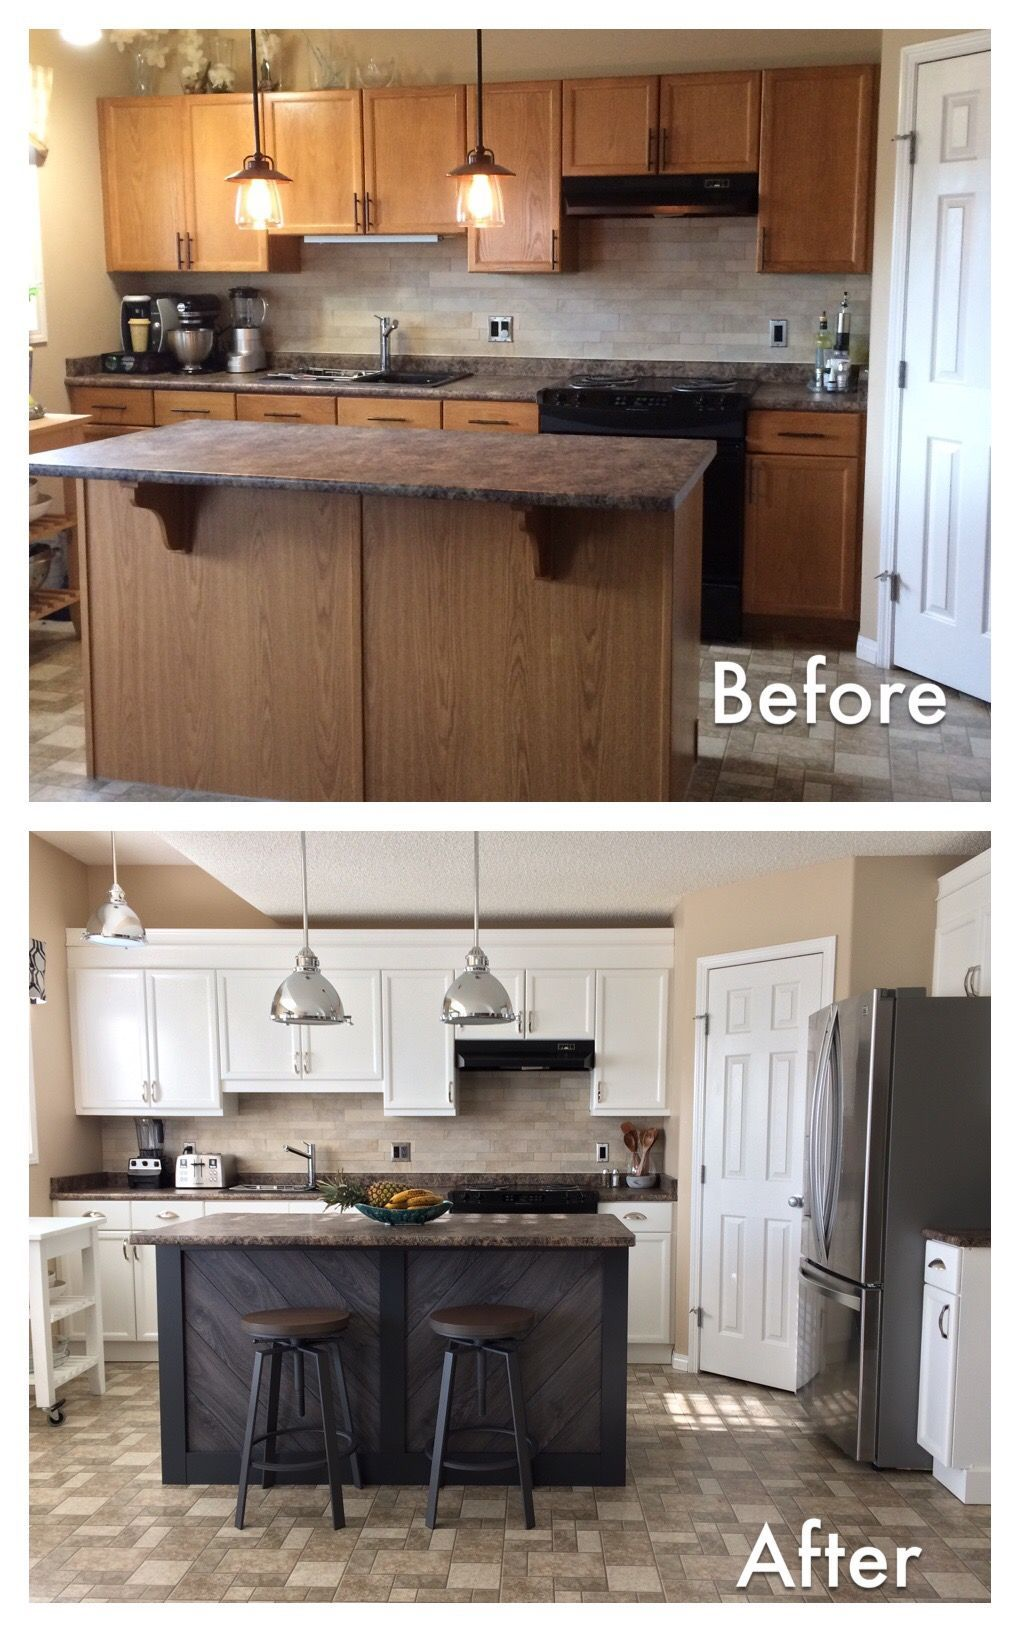 This is an updated kitchen on a budget. Paint used